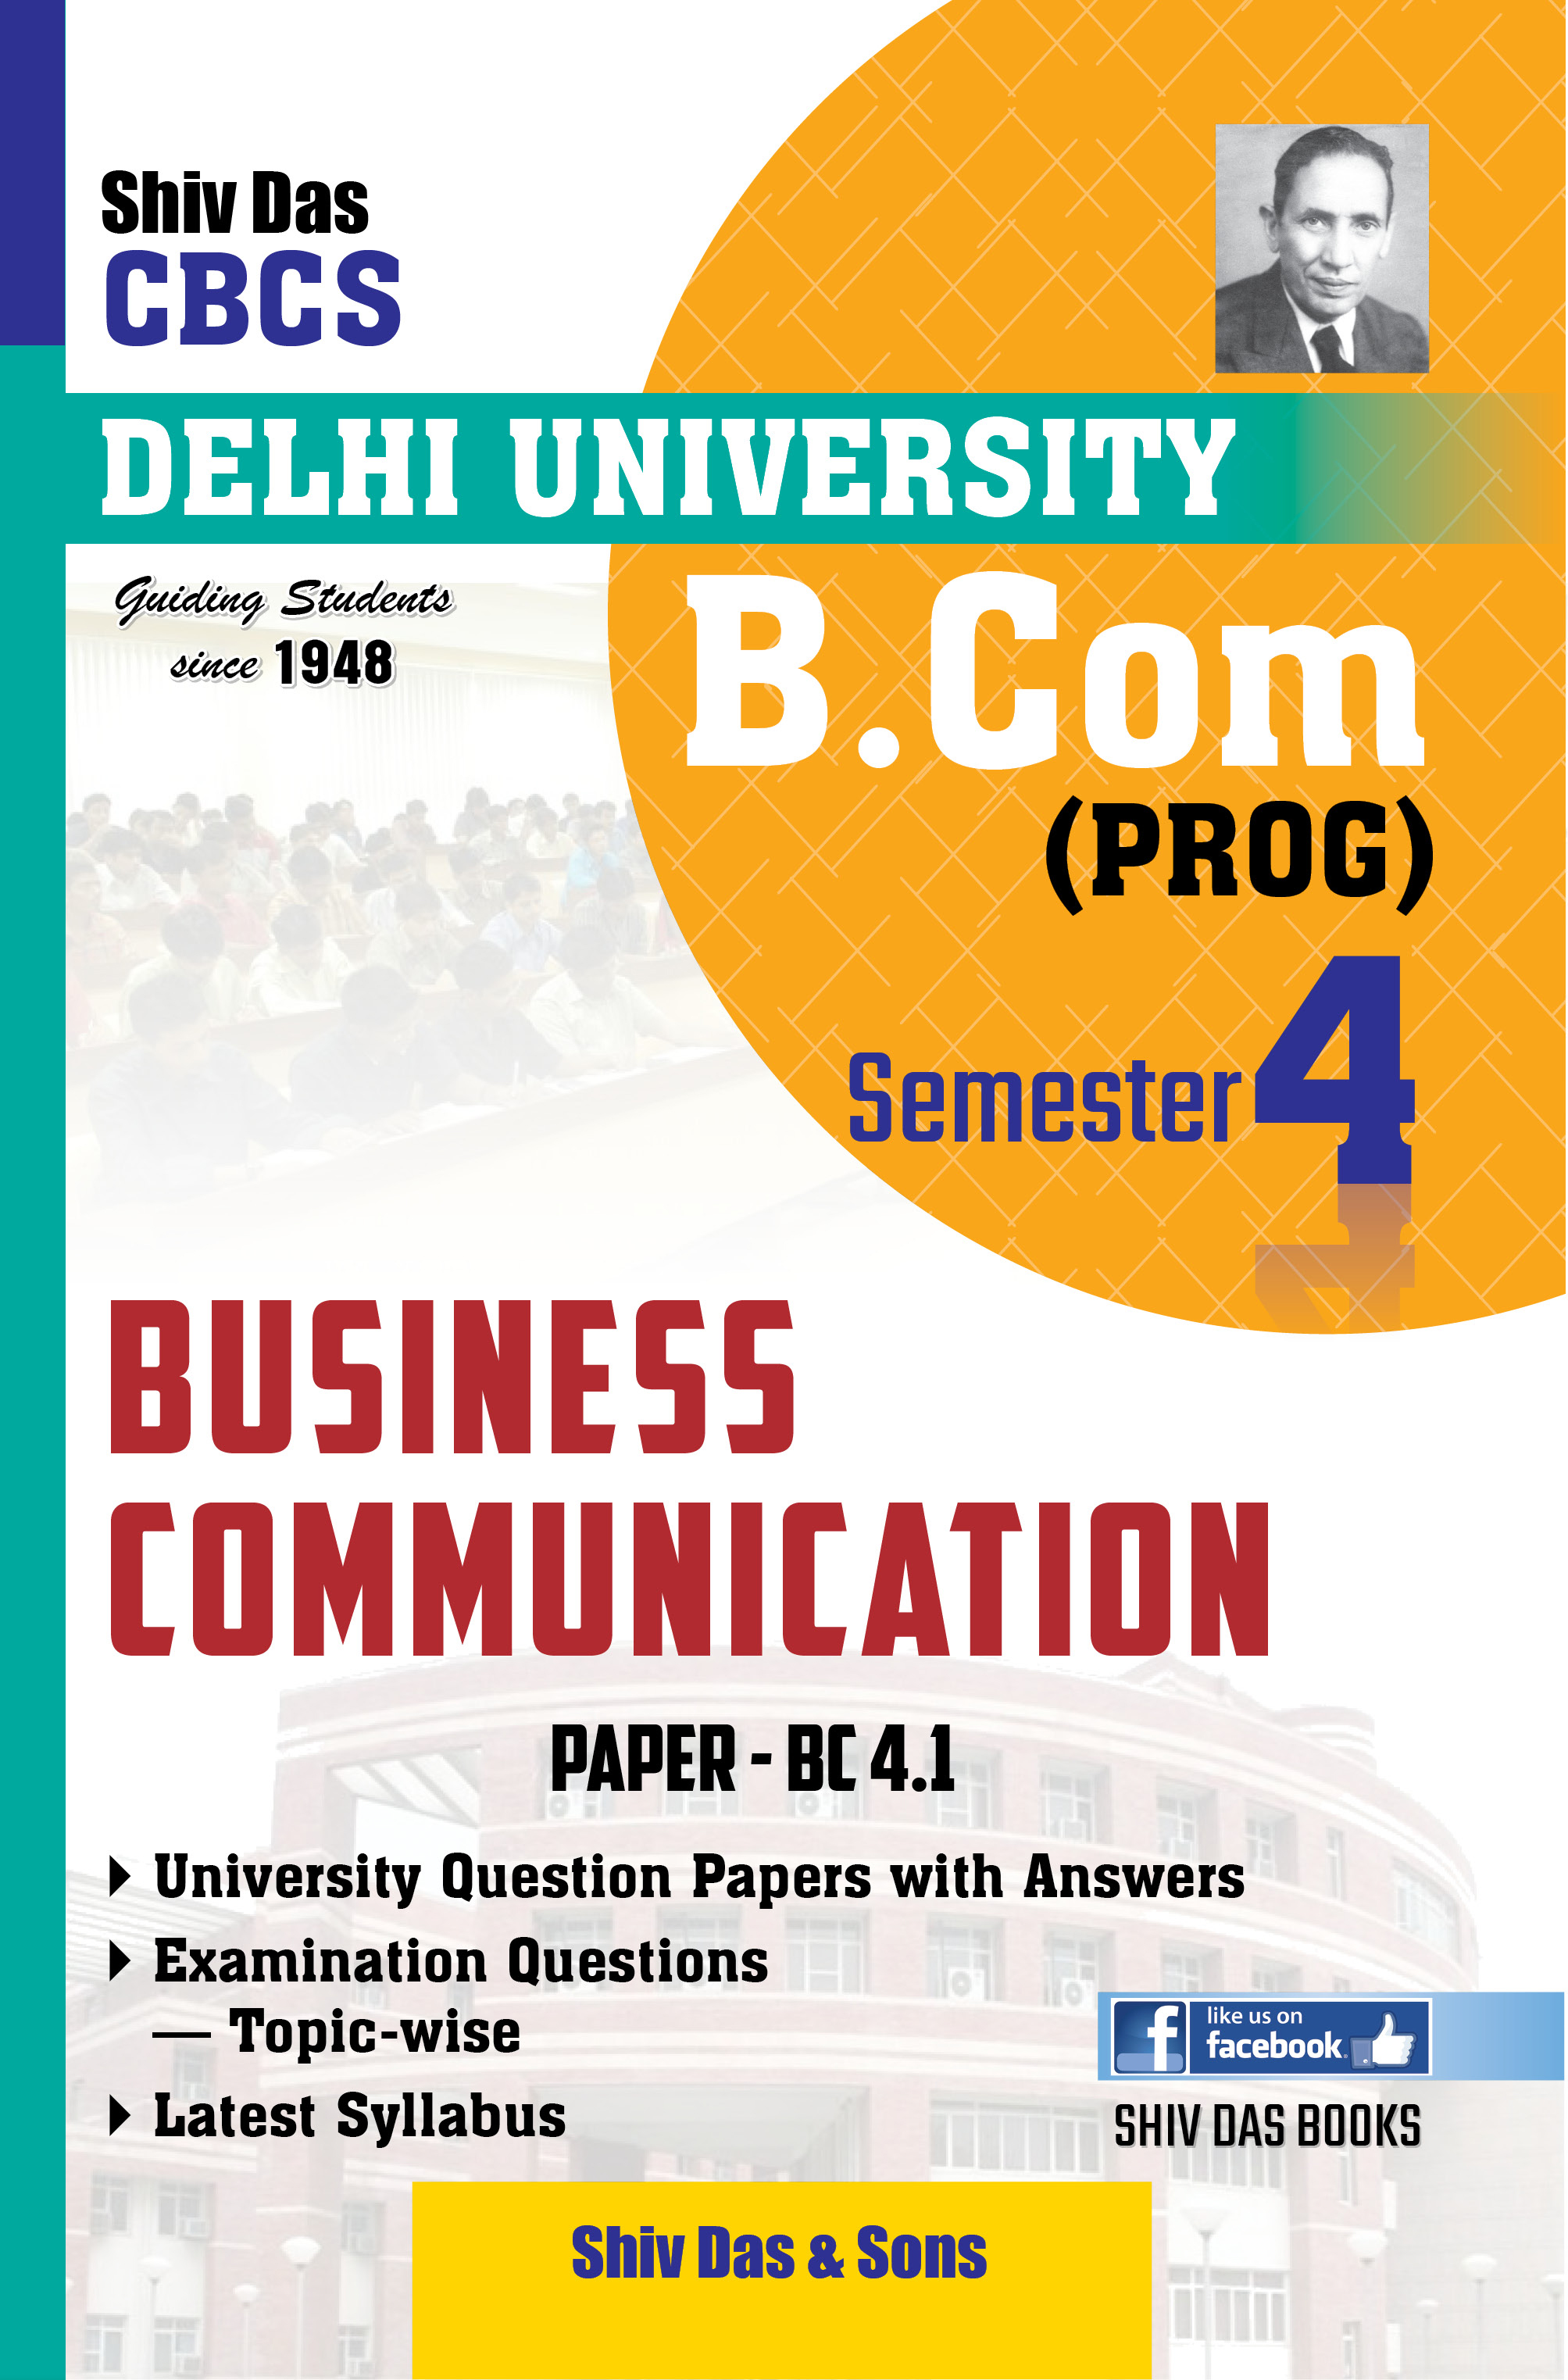 Business Communication for B.Com Prog Semester- 4 for Delhi University by Shiv Das